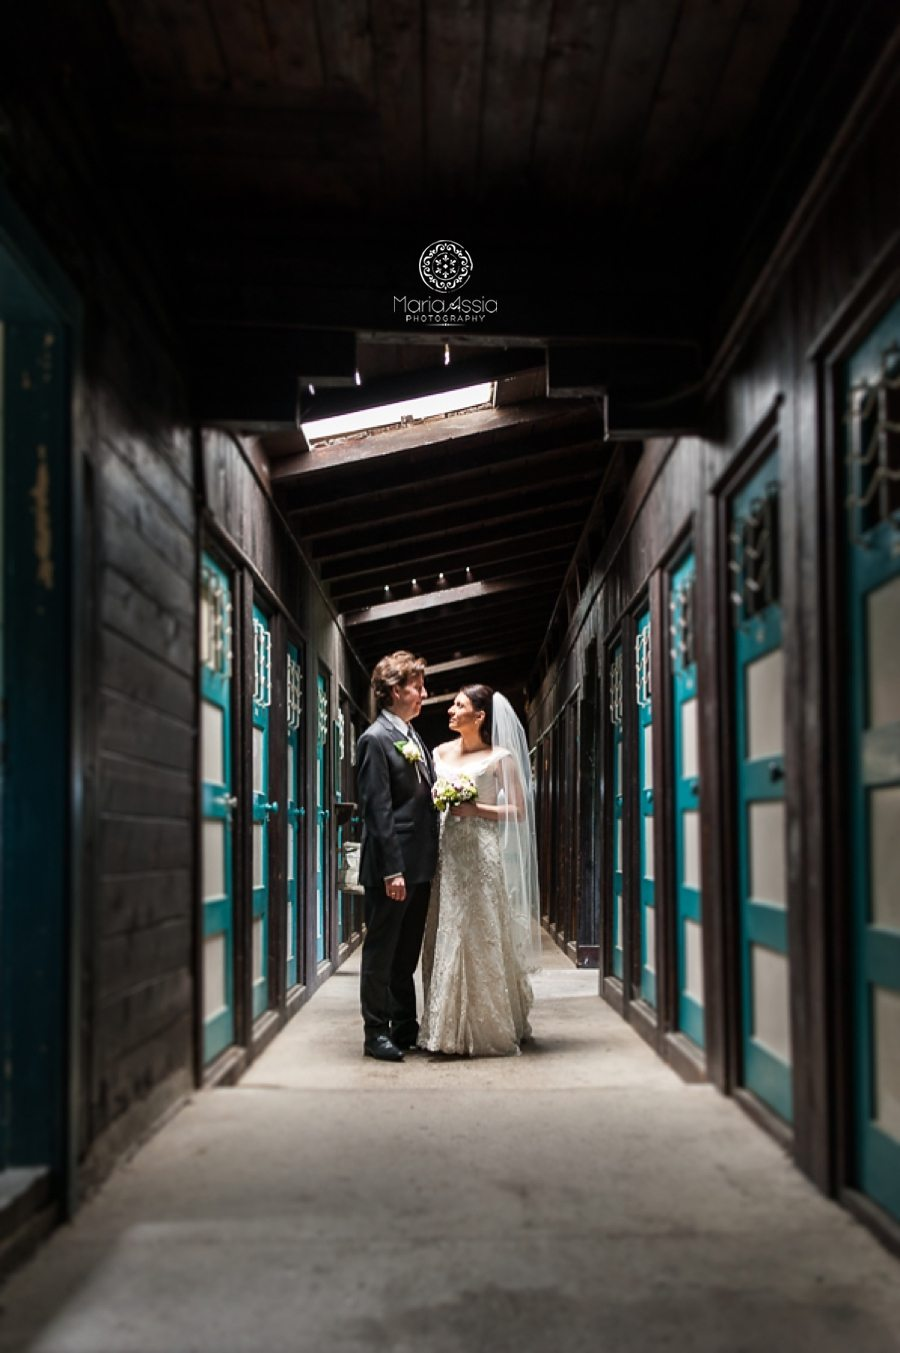 Austrian bride and groom standing in long black and white hallway